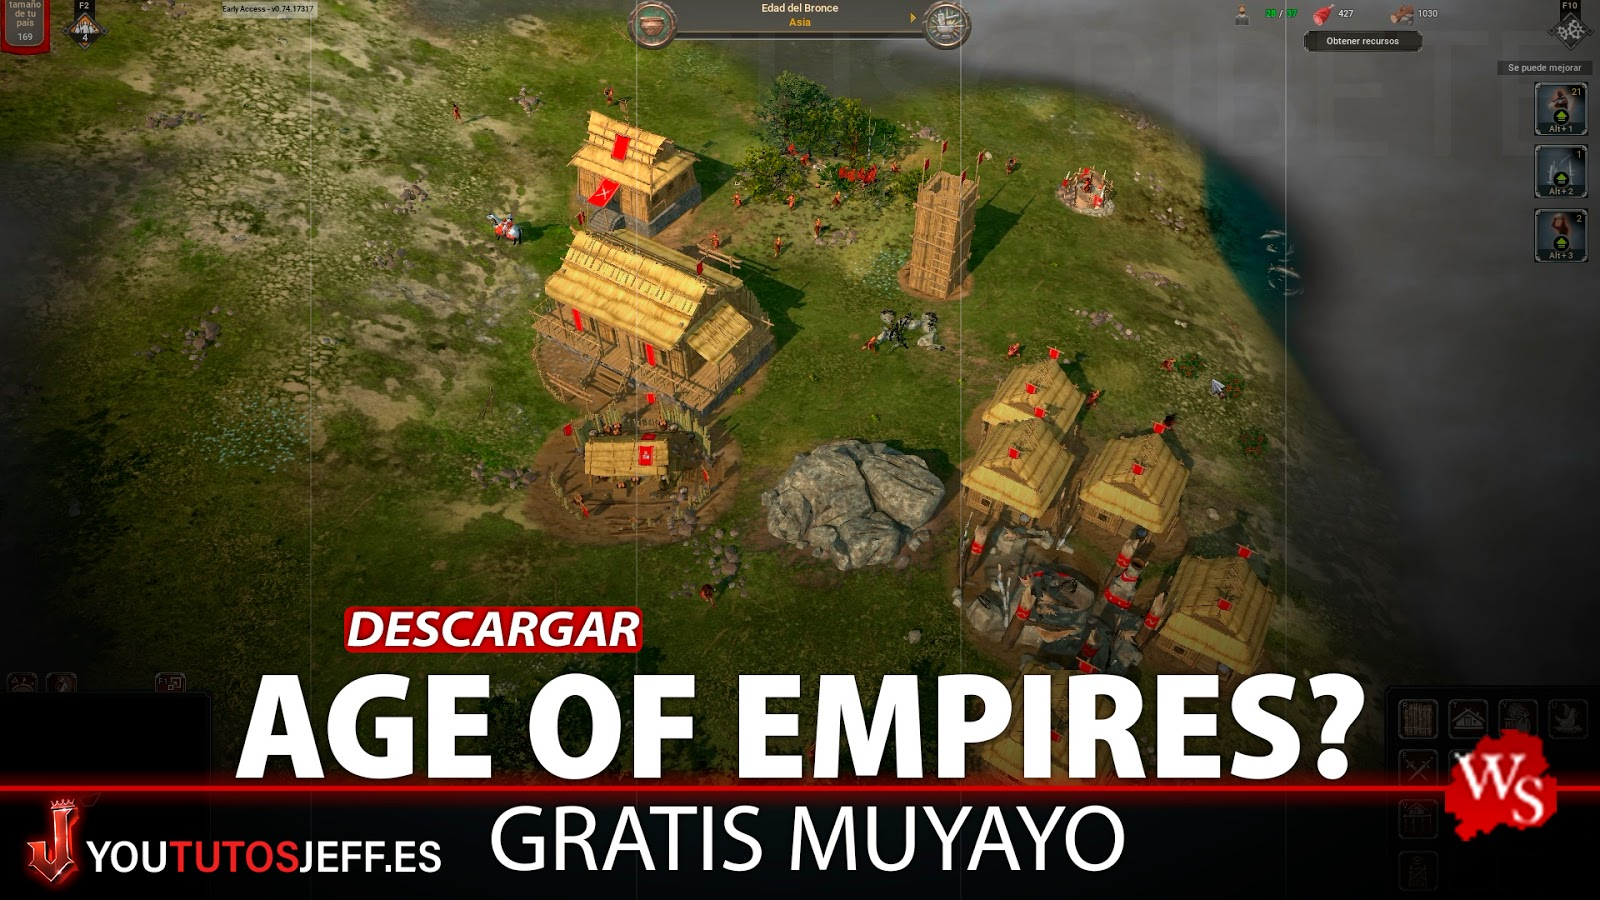 Age Of Empires Gratis? Descargar War Selection para PC